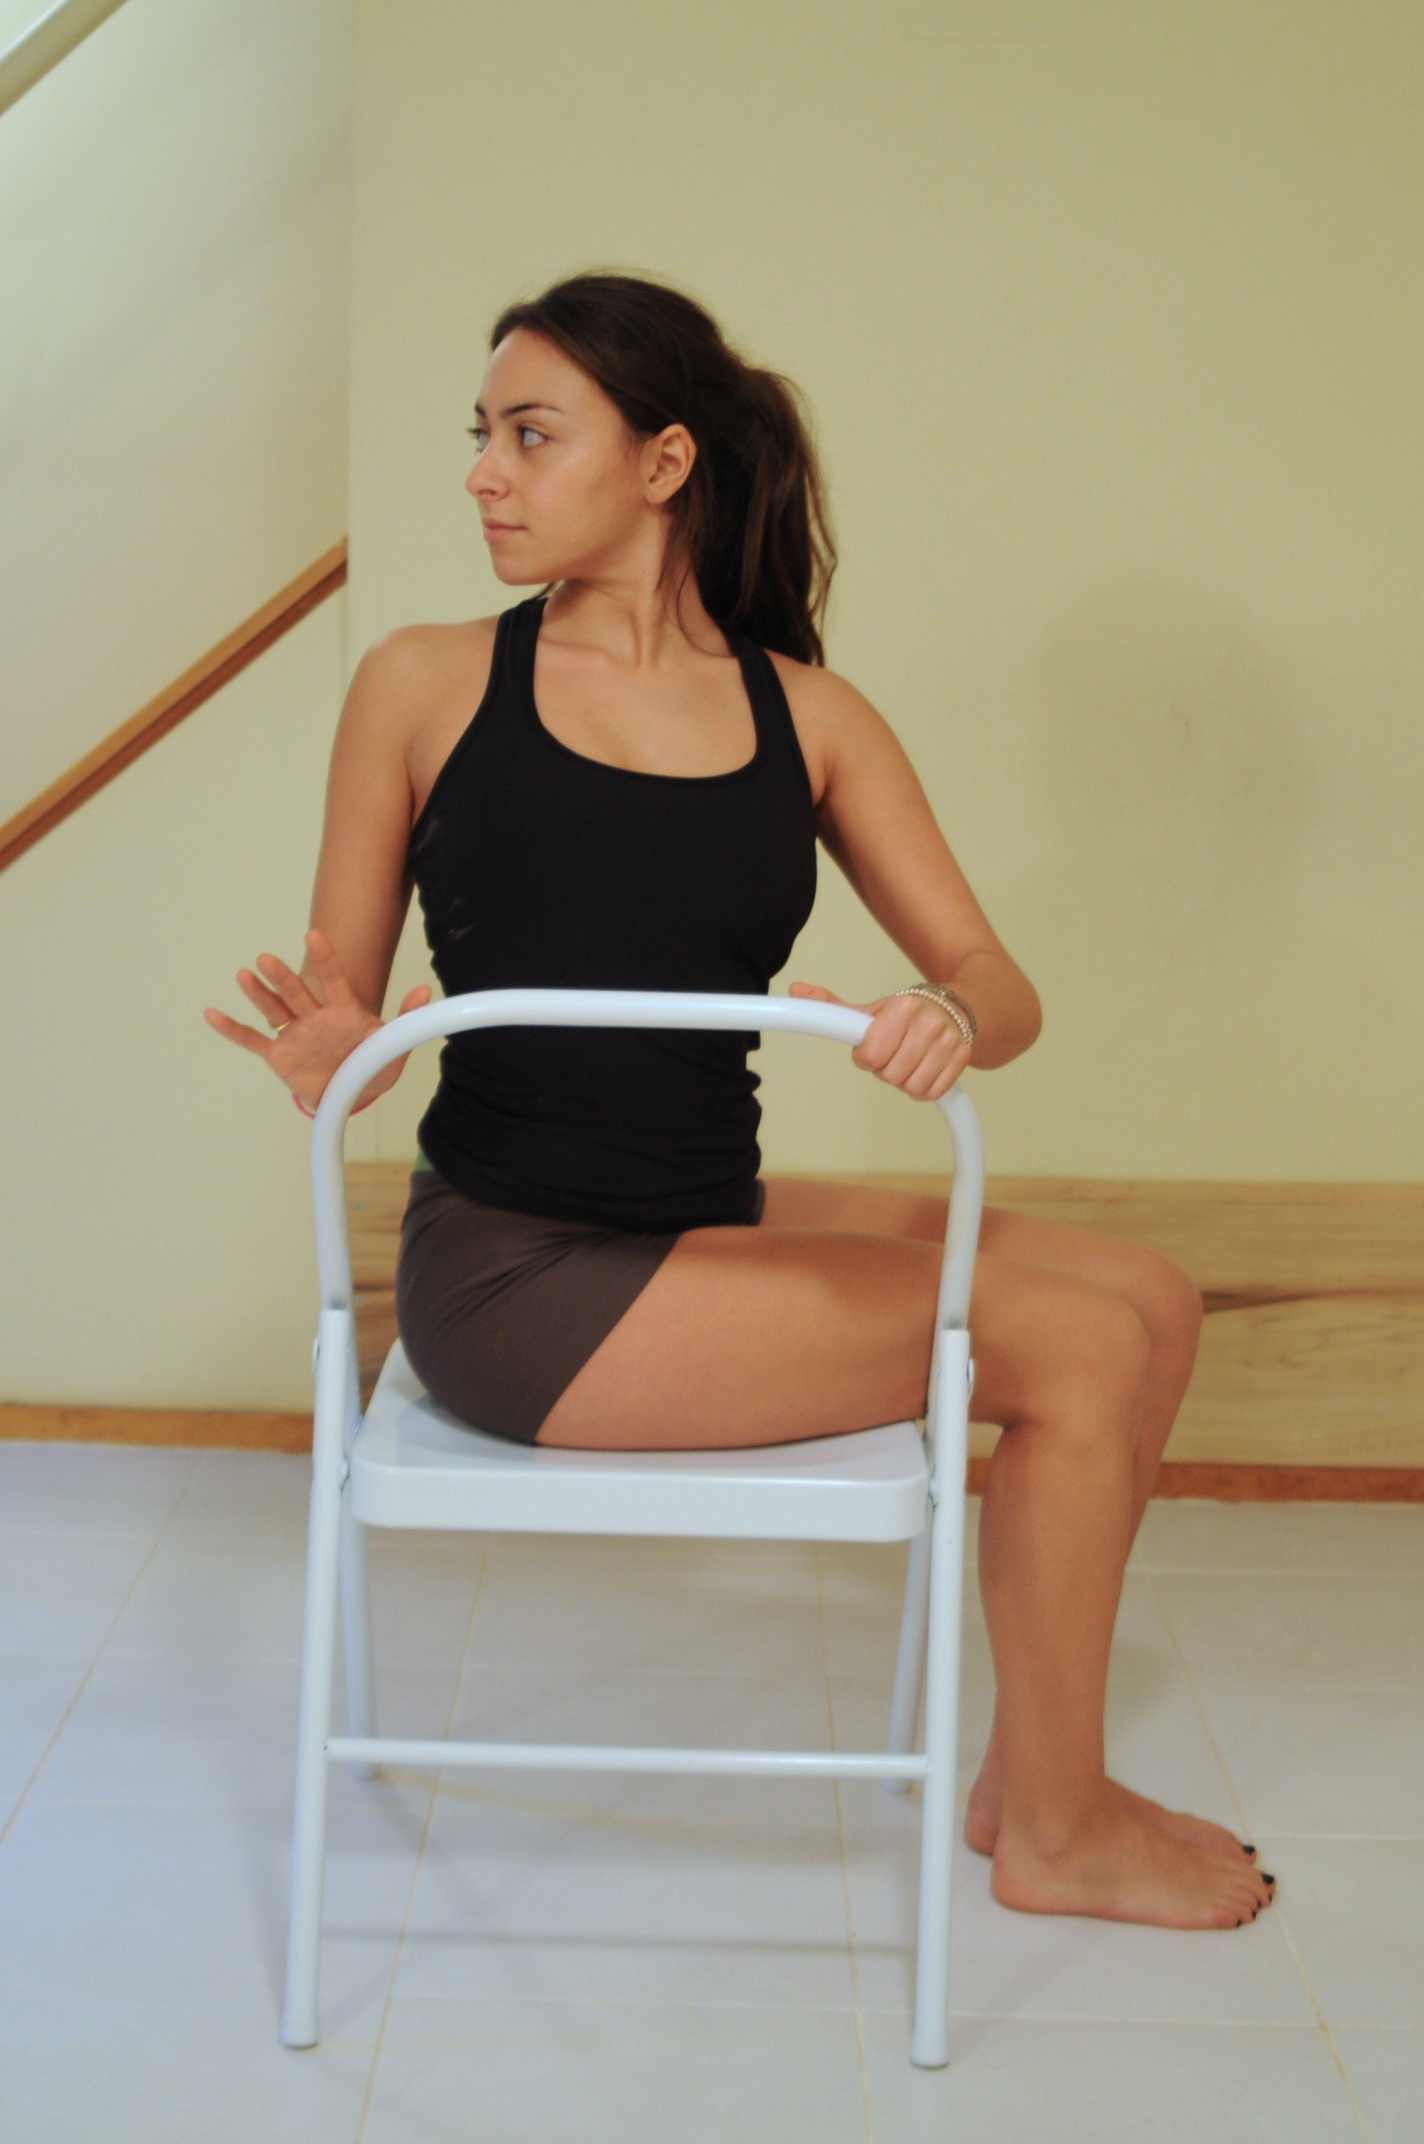 Yoga technique of the Seated Spinal Twist